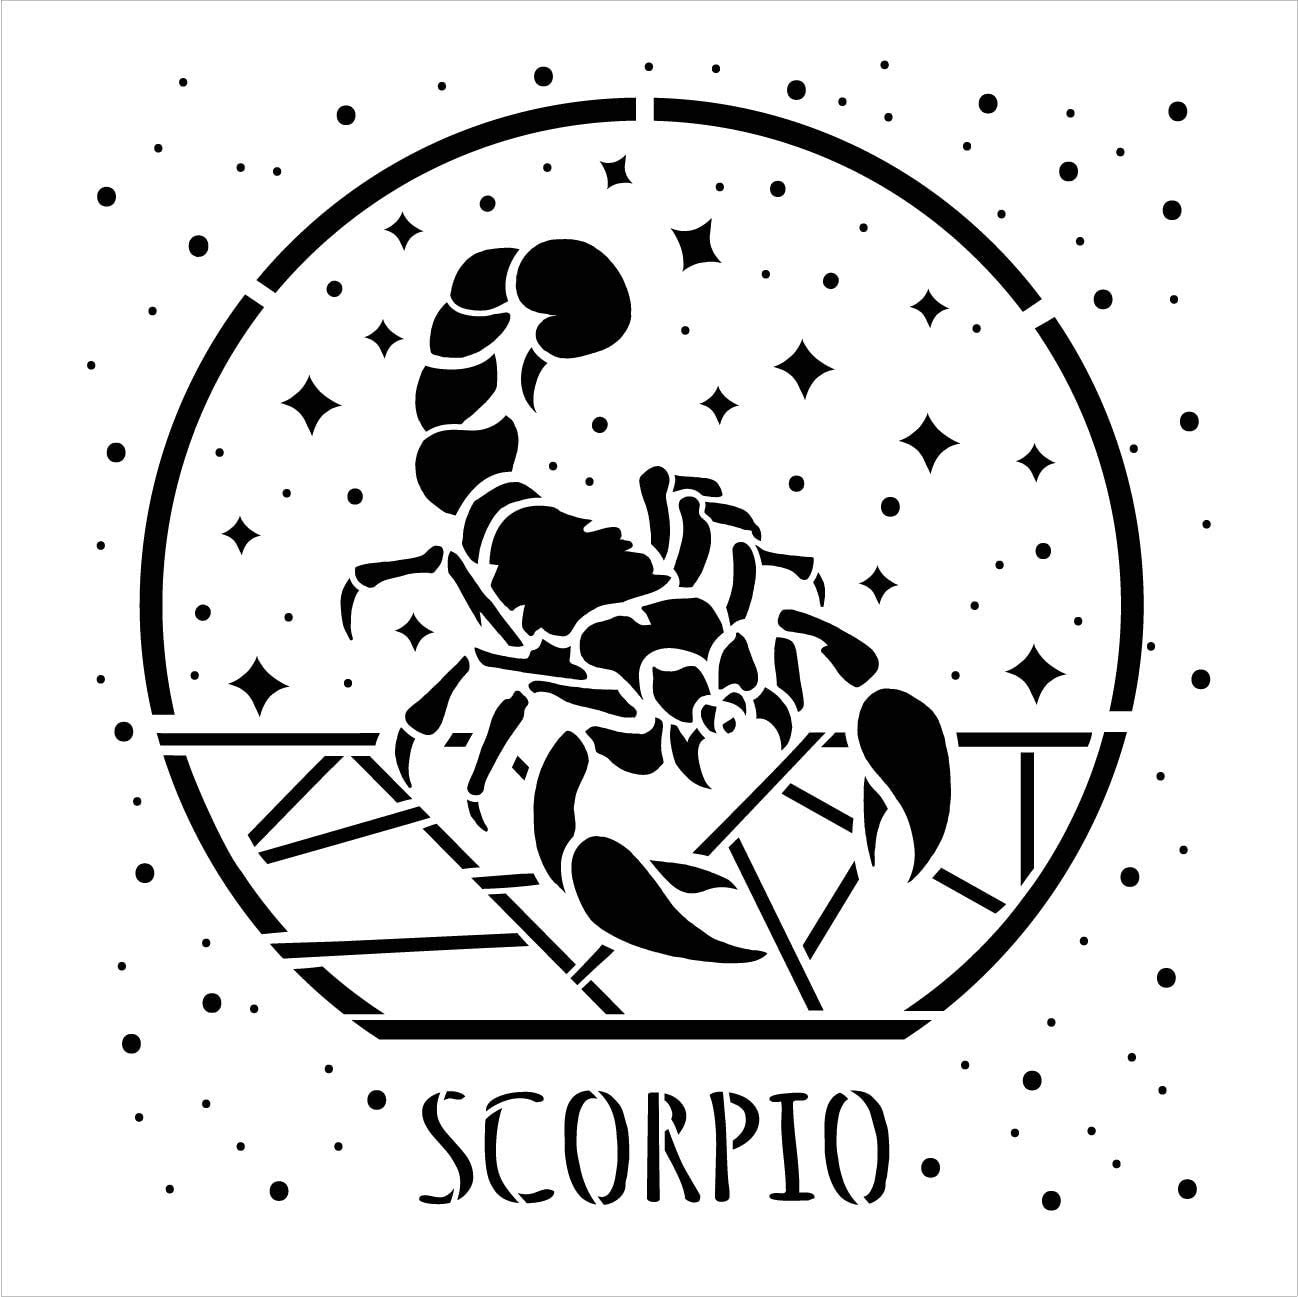 Scorpio Zodiac Stencil by StudioR12 | DIY Star Sign Celestial Bedroom & Home Decor | Craft & Paint Astrology Wood Signs | Select Size